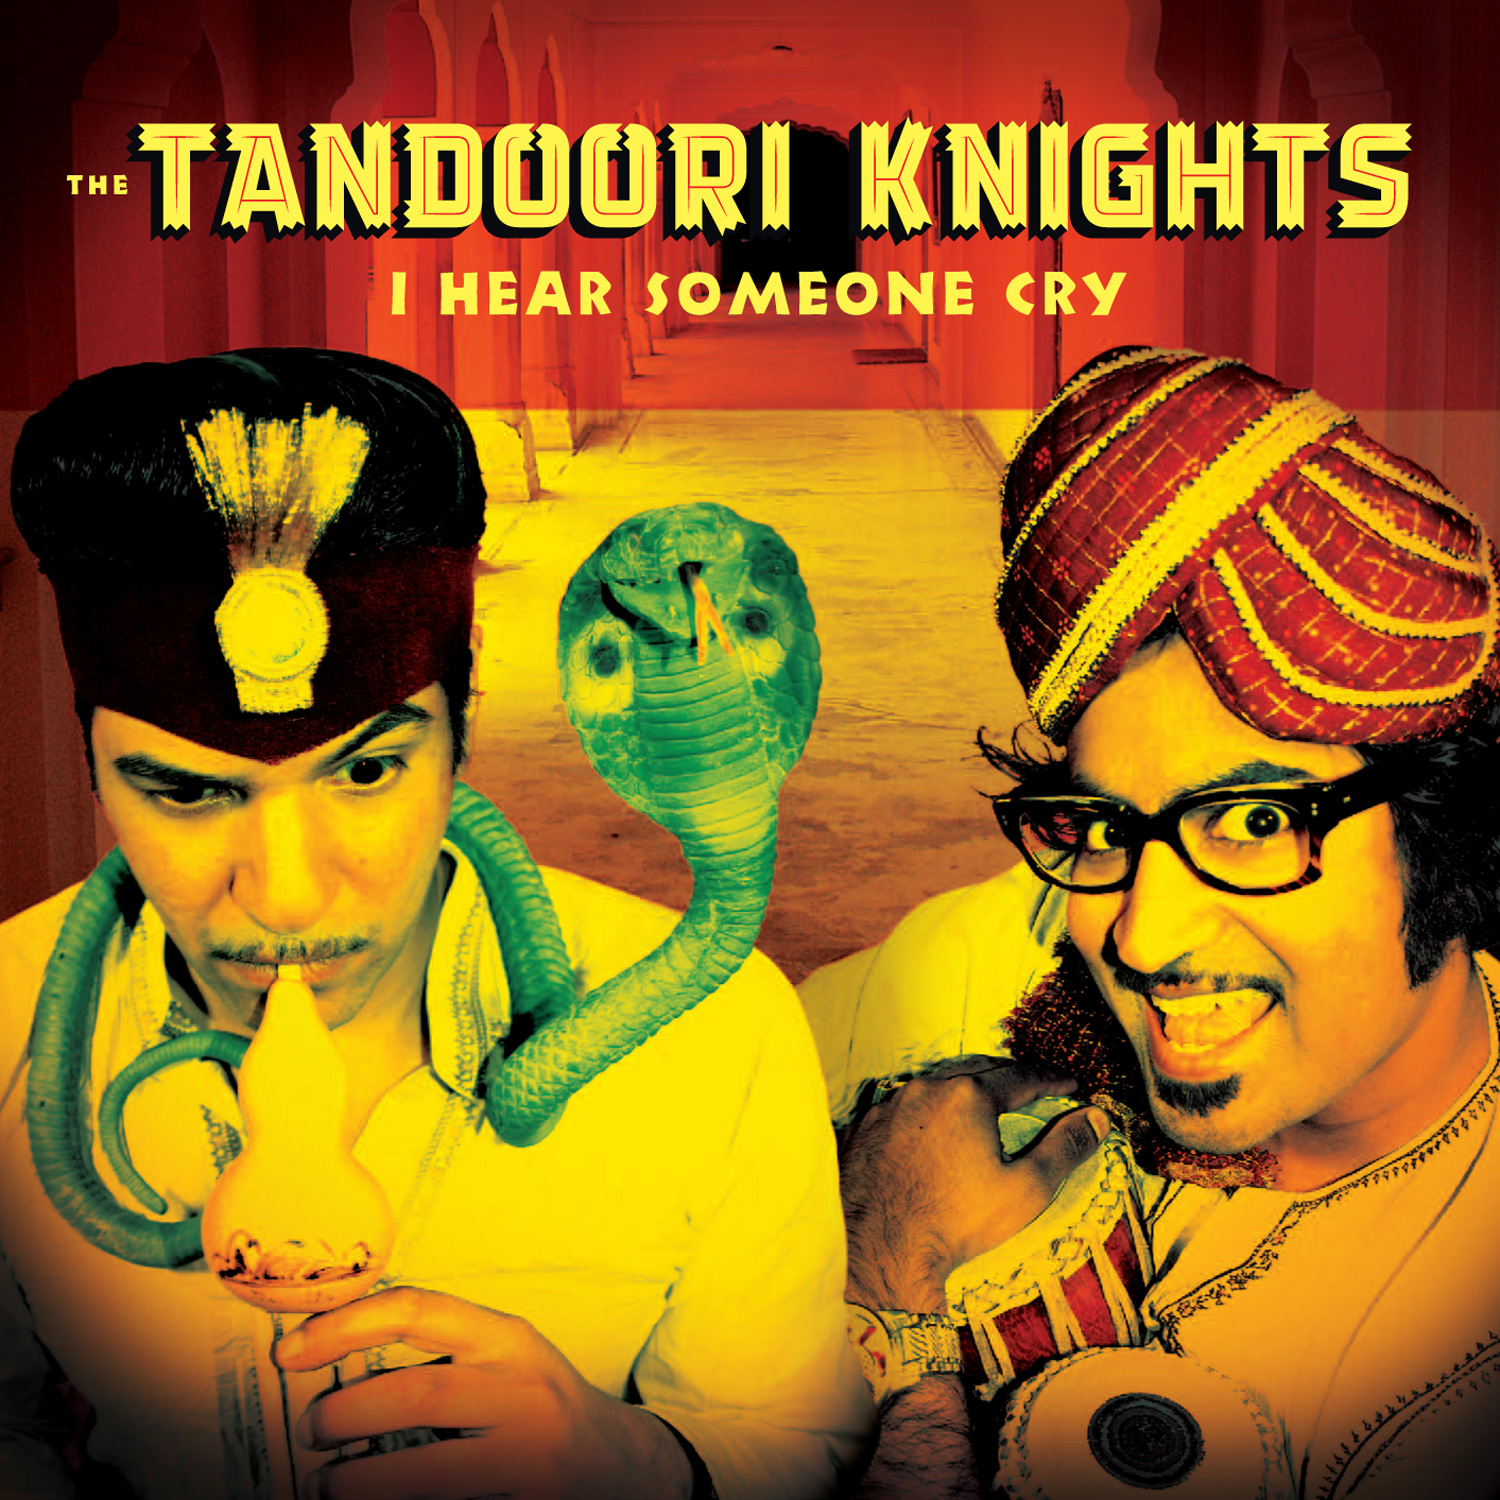 The Tandoori Knights - I Hear Someone Cry 45 sleeve